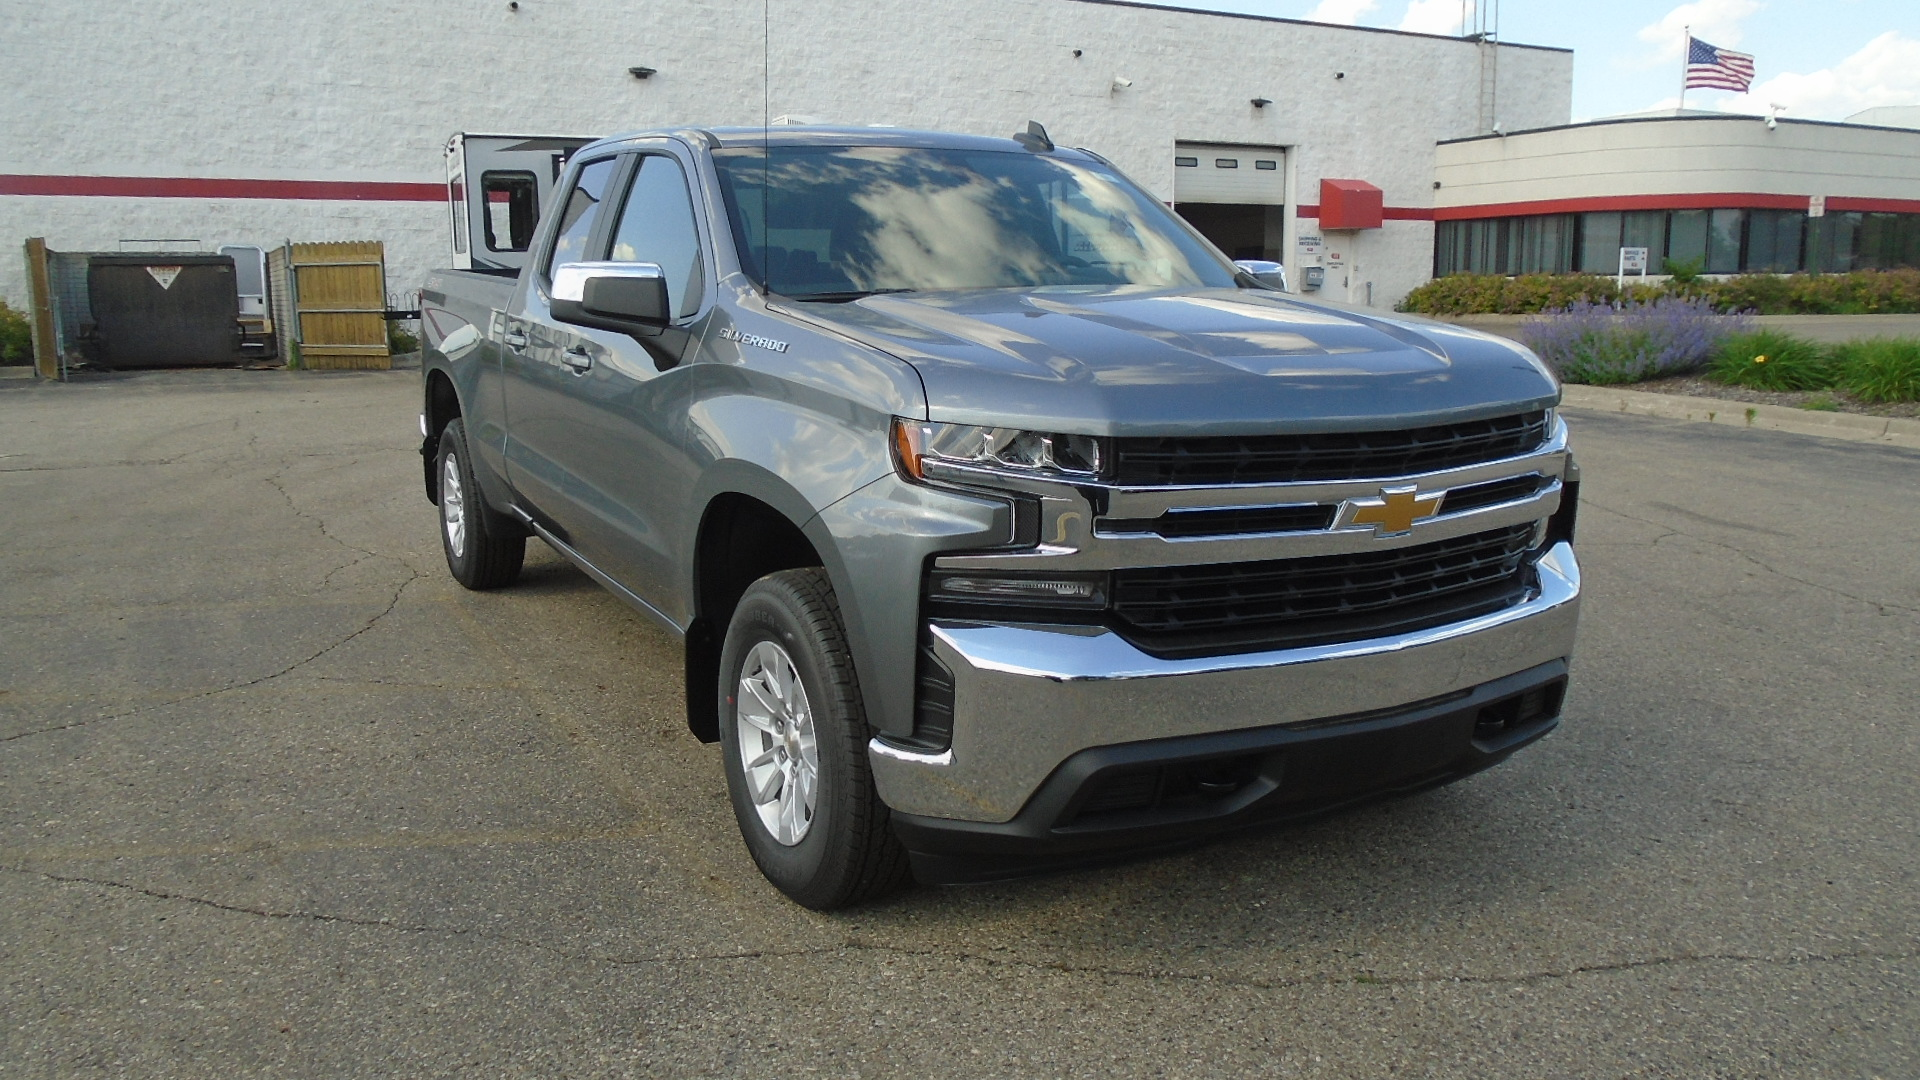 2019 Silverado 1500 Double Cab 4x4, Pickup #84246 - photo 1